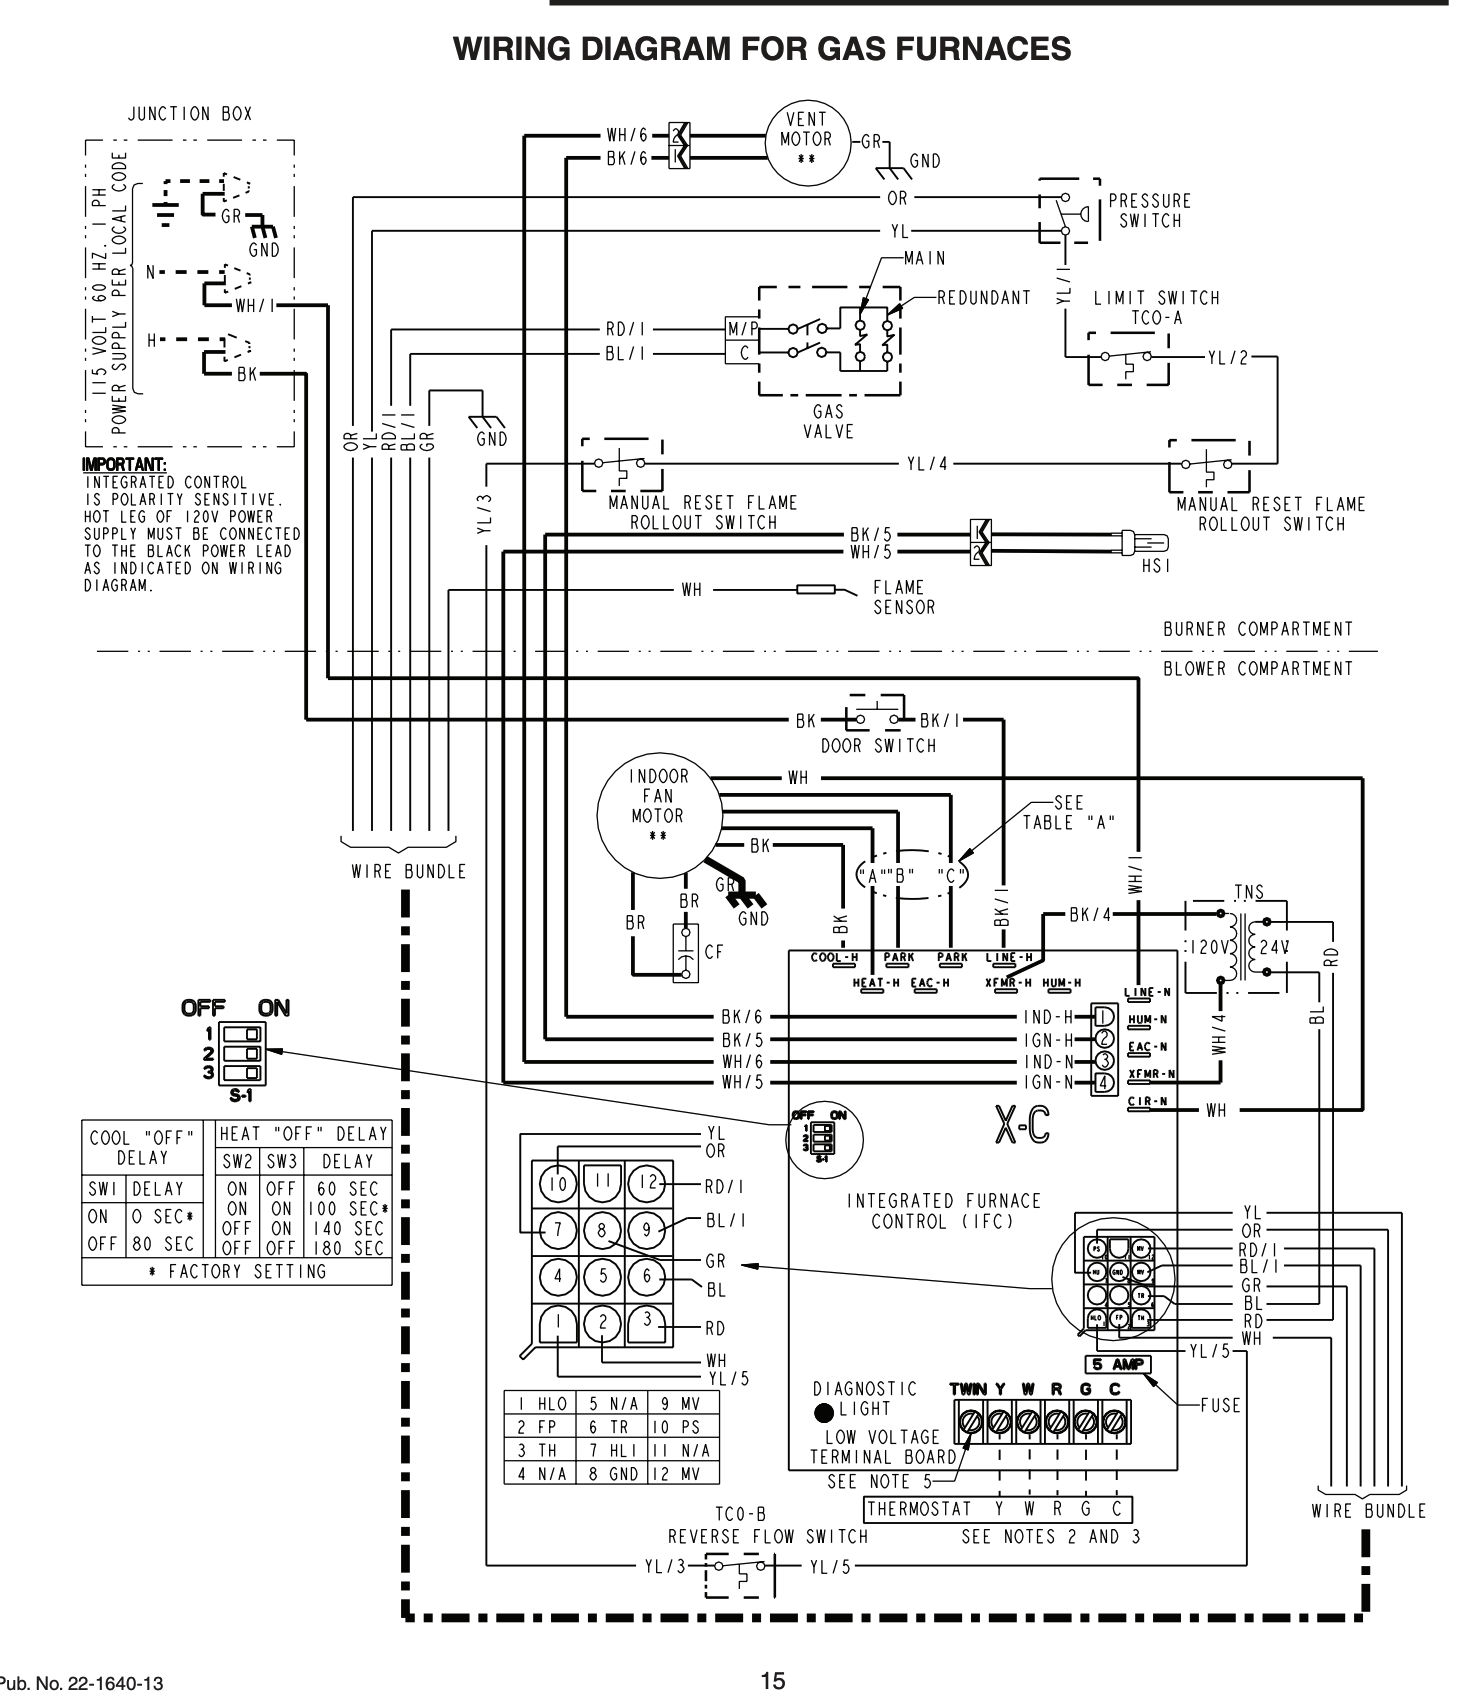 Trane Furnace Diagram Online Wiring Diagram